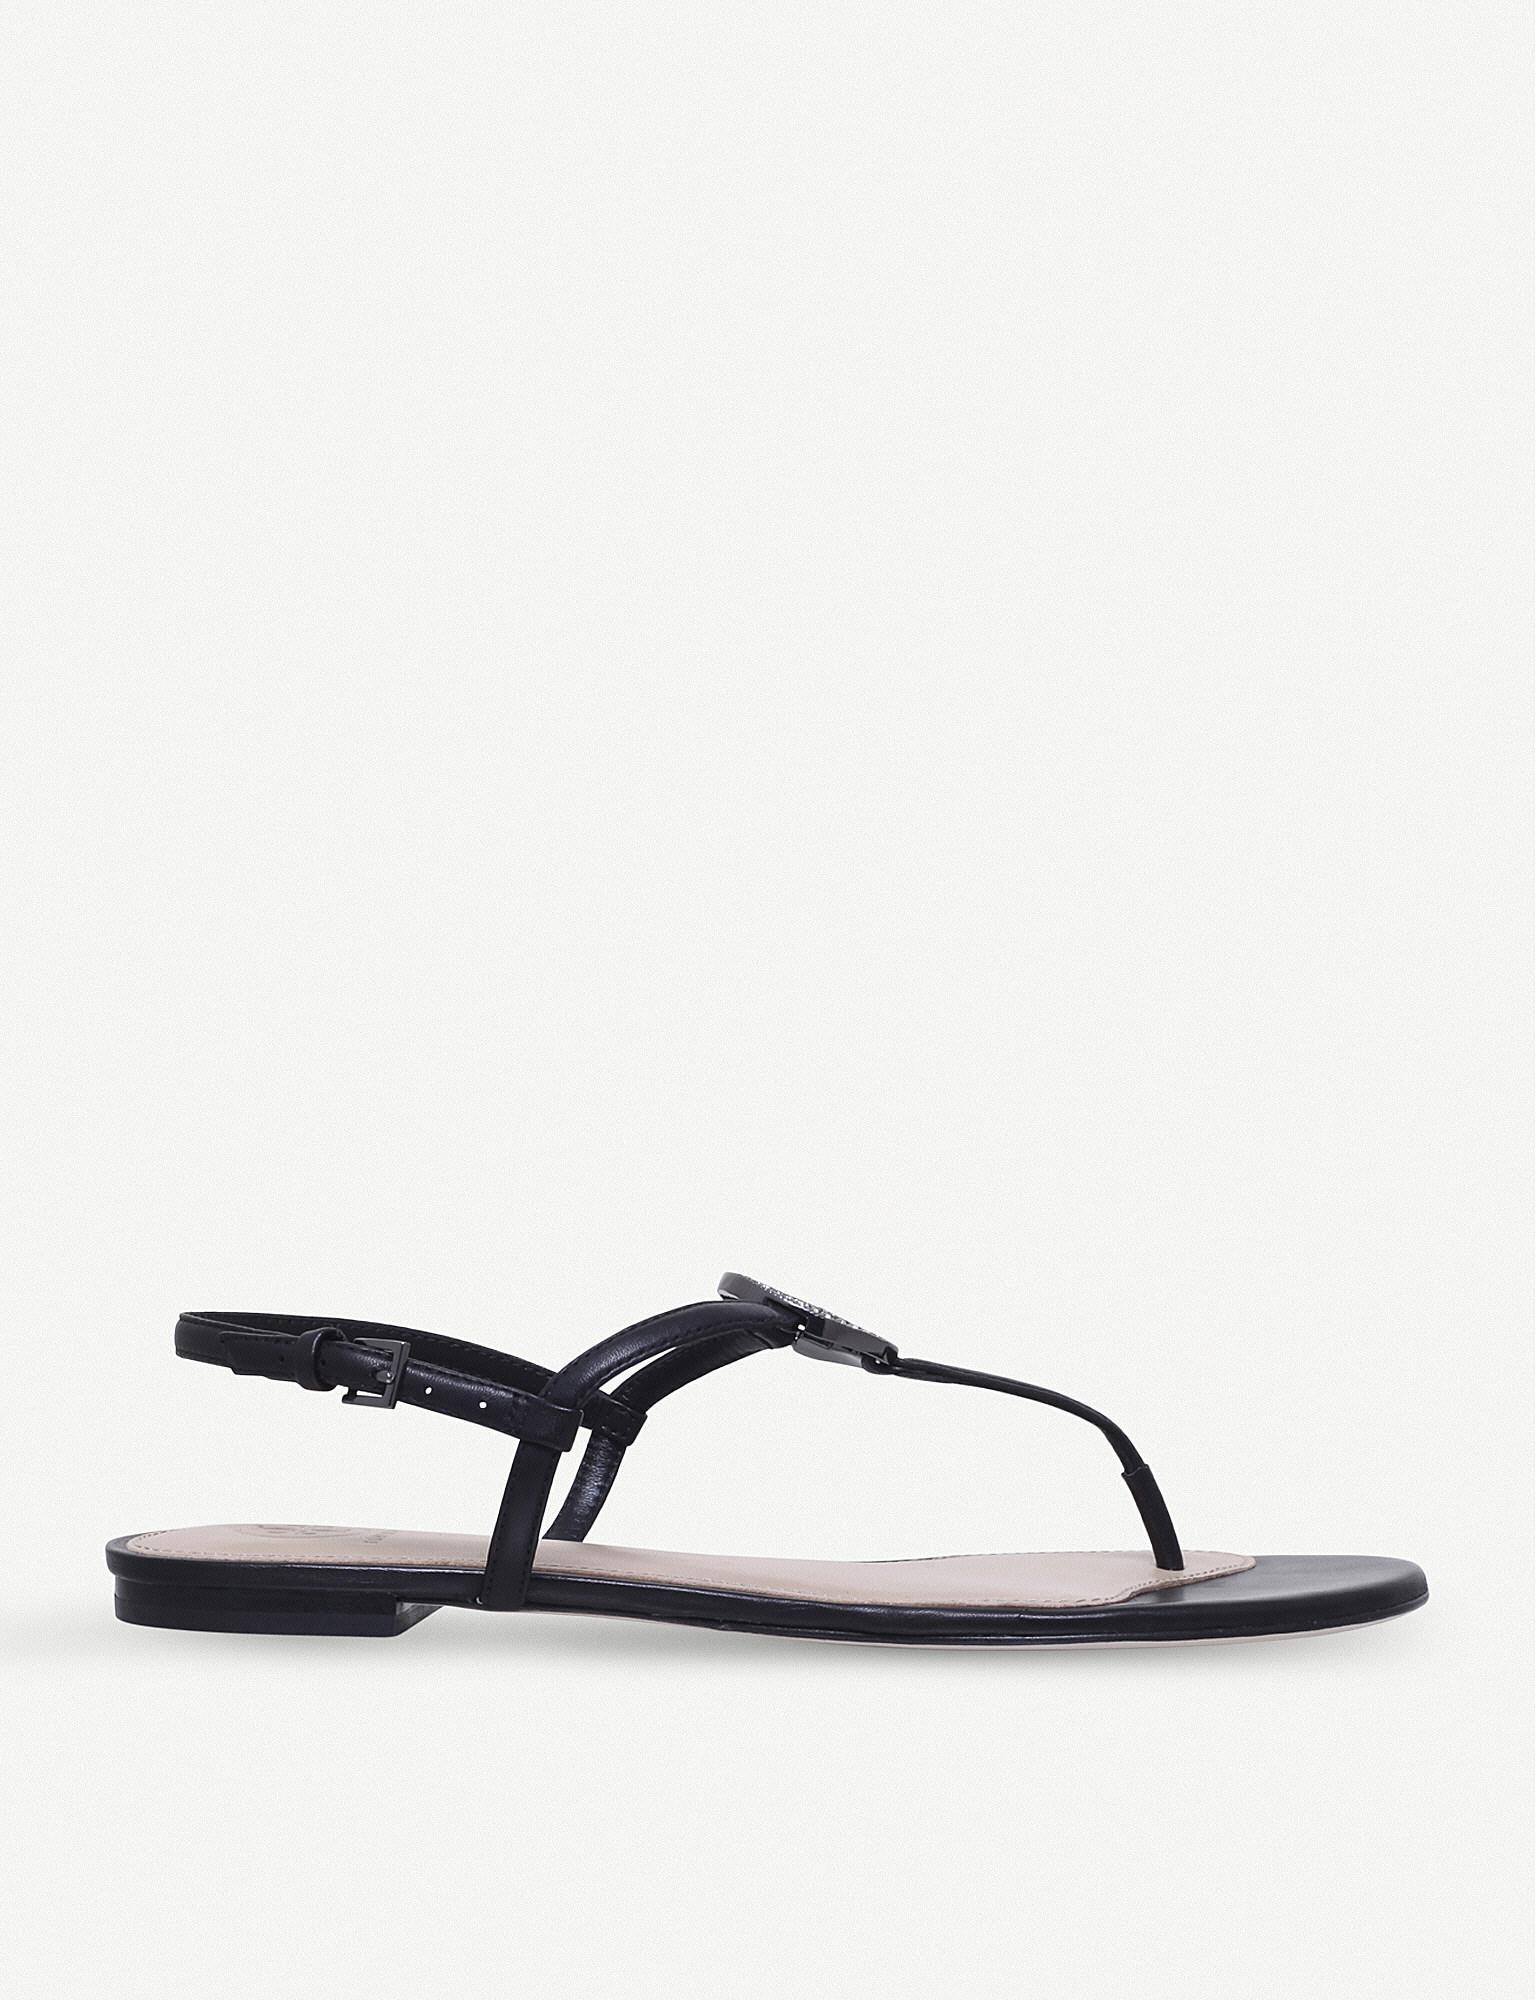 16d366108a51 Lyst - Tory Burch Liana Flat Leather Sandals in Black